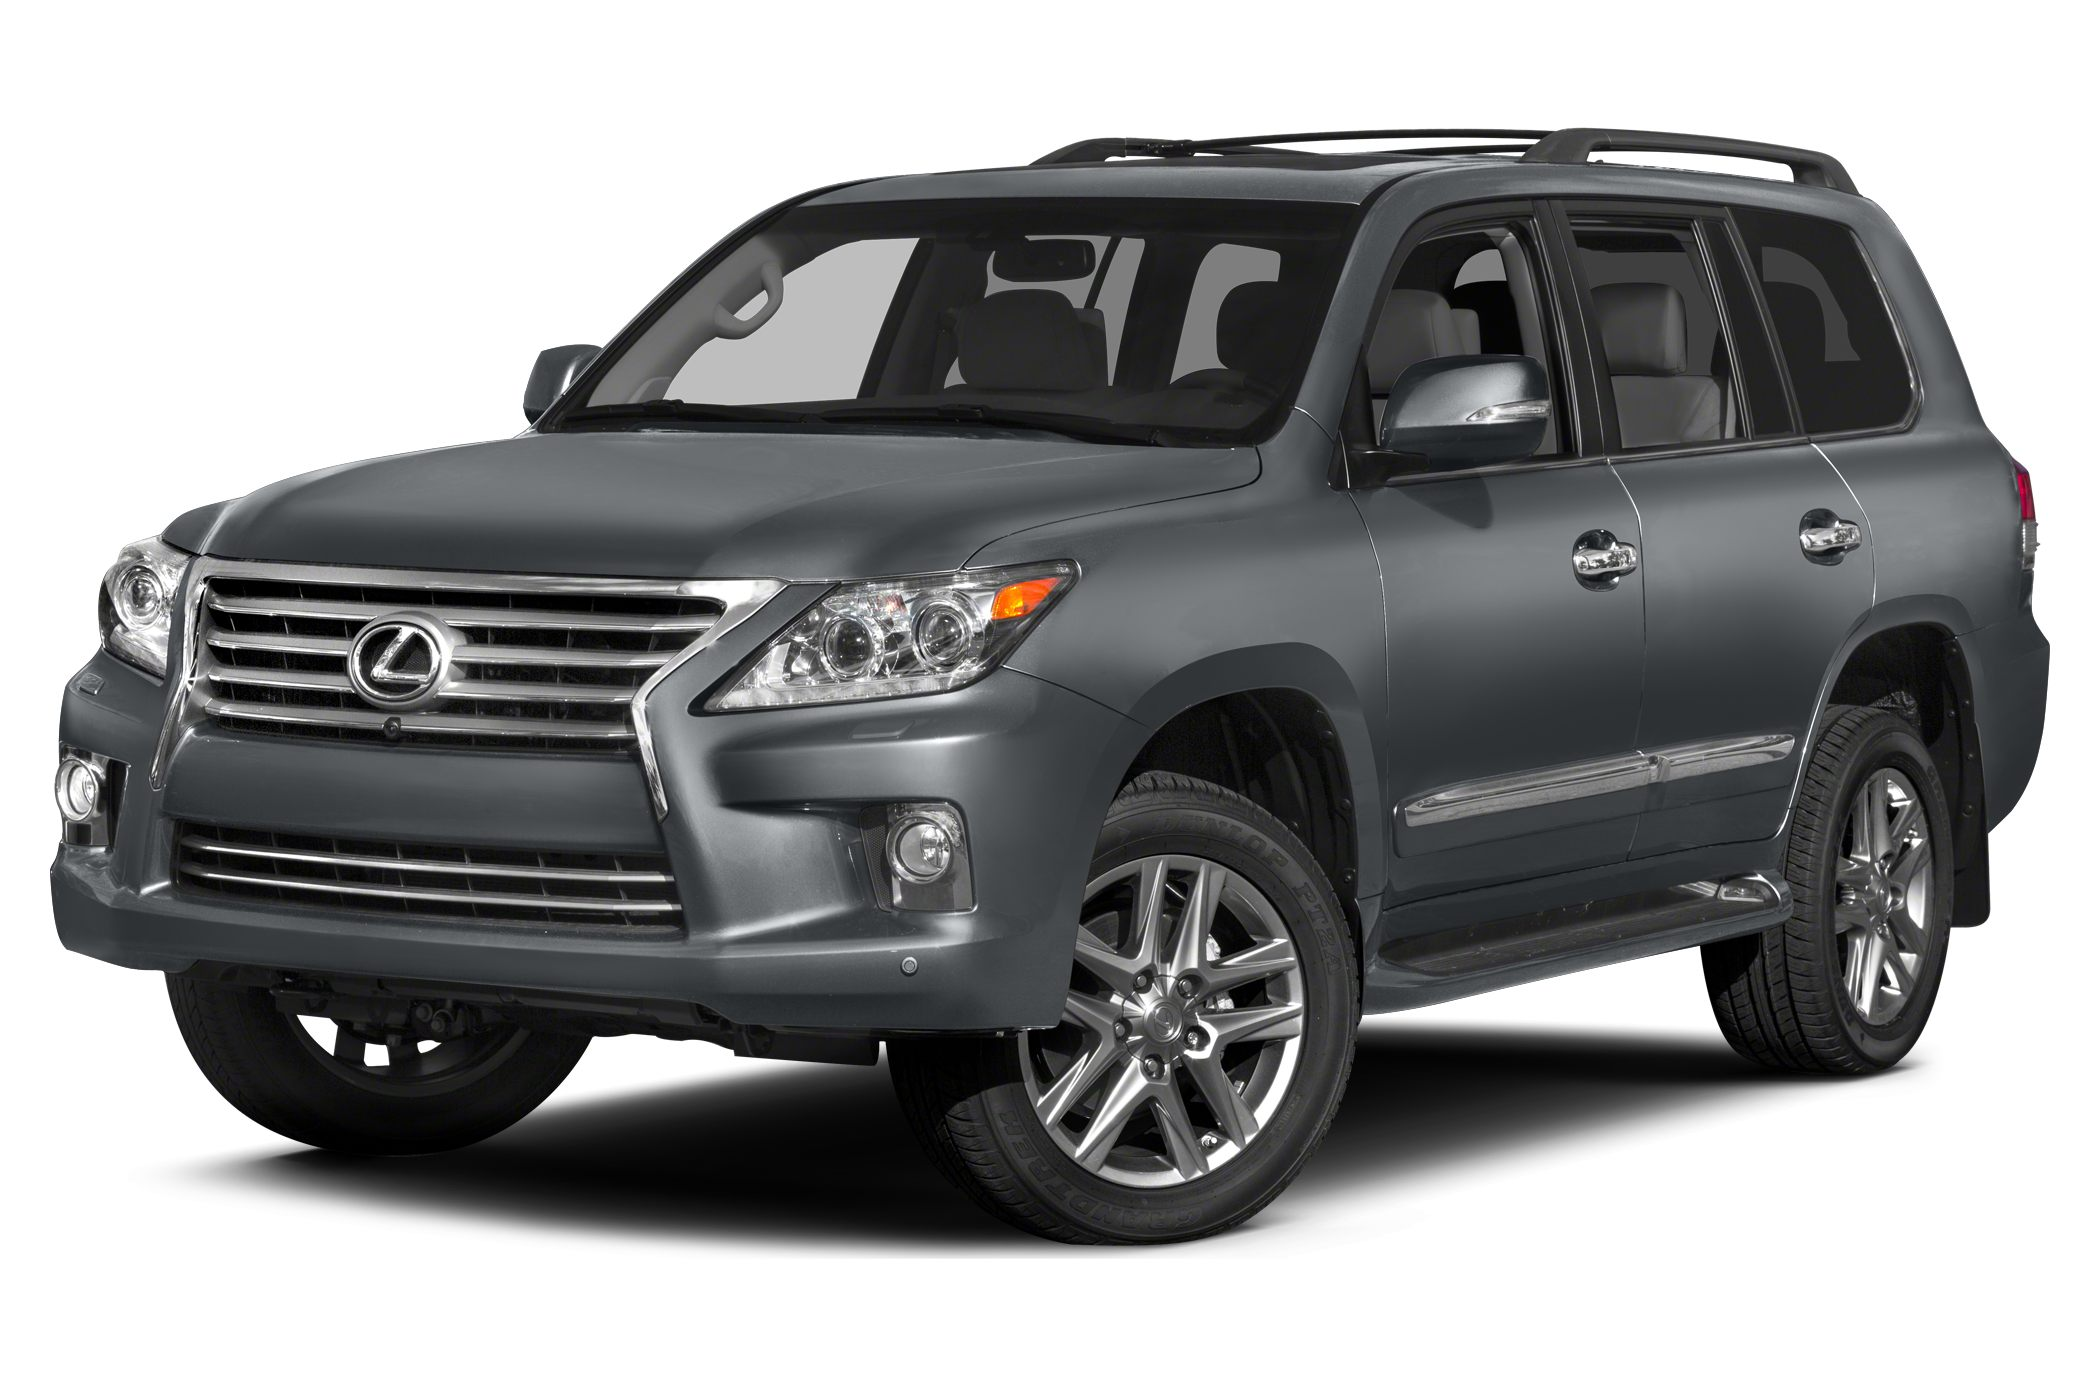 2015 Lexus LX 570 Base SUV for sale in Atlanta for $86,161 with 0 miles